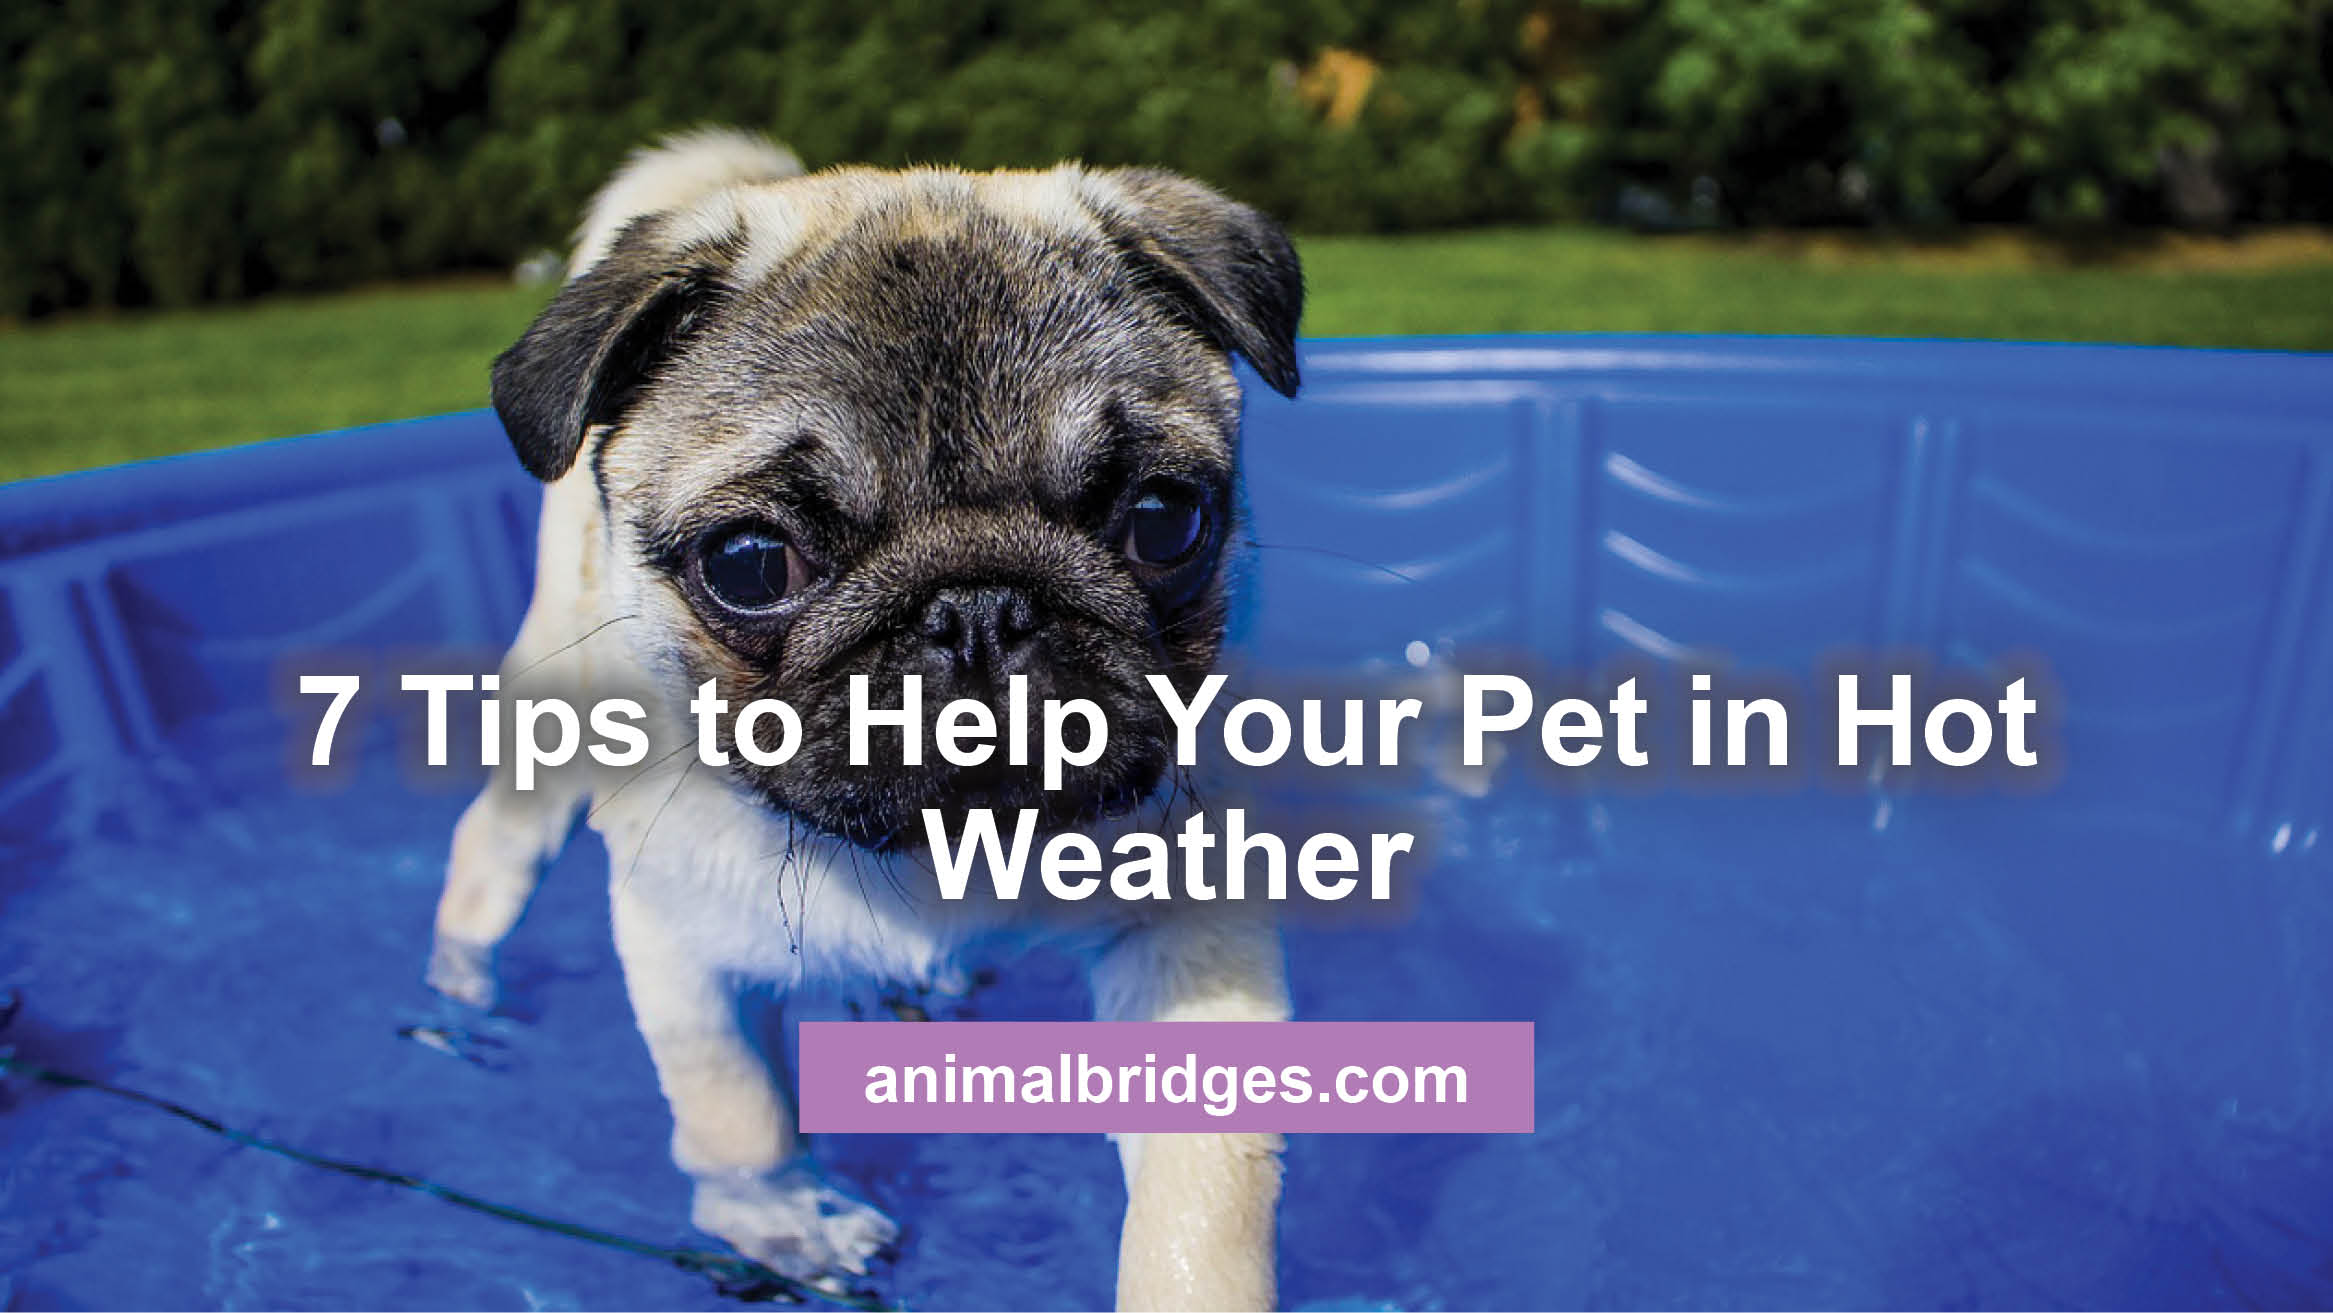 7 Tips to Help Your Pet in Hot Weather